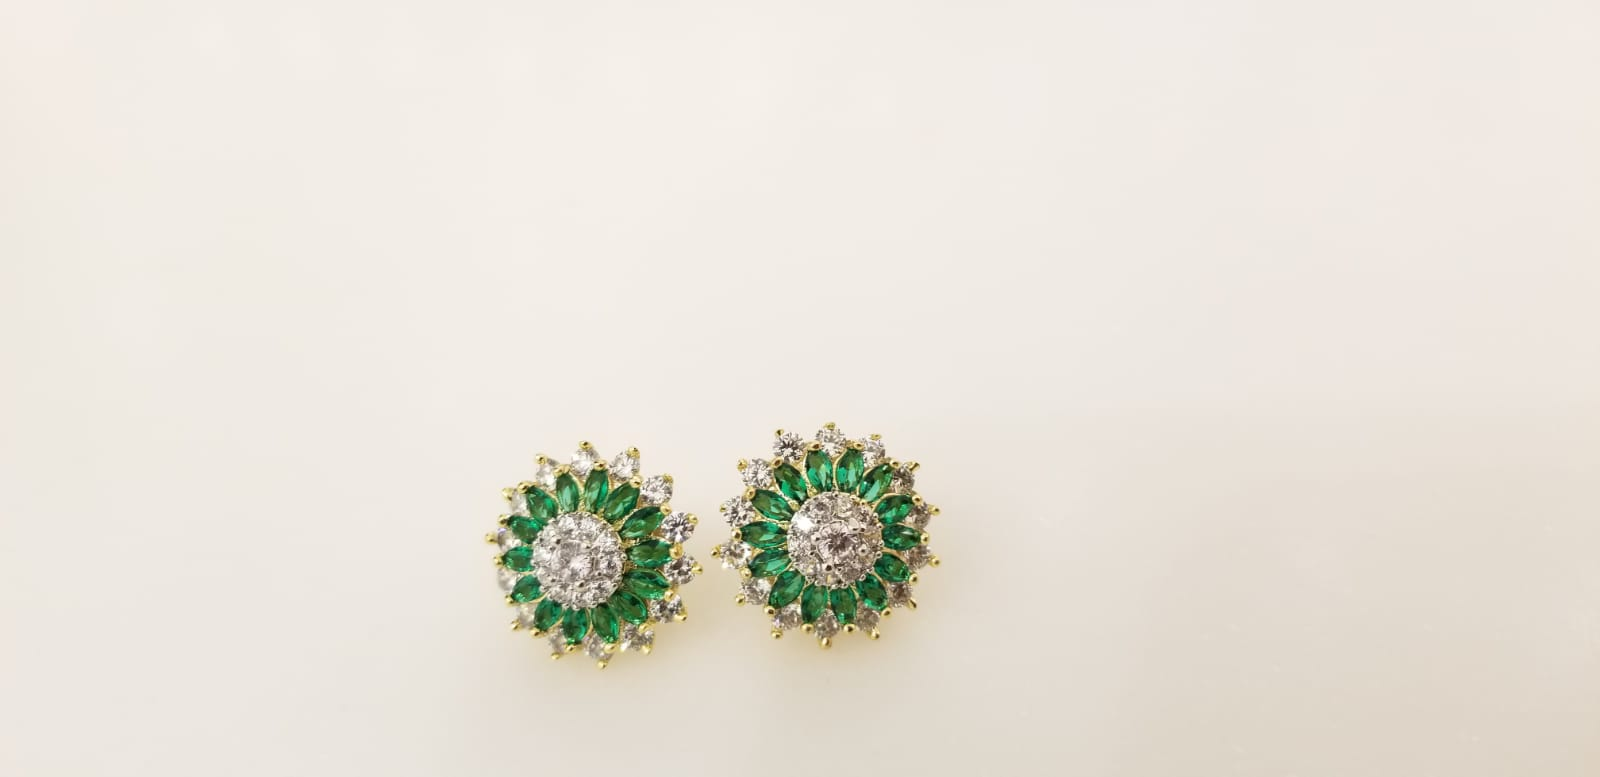 Stud Earrings With Green Stones and American Diamonds